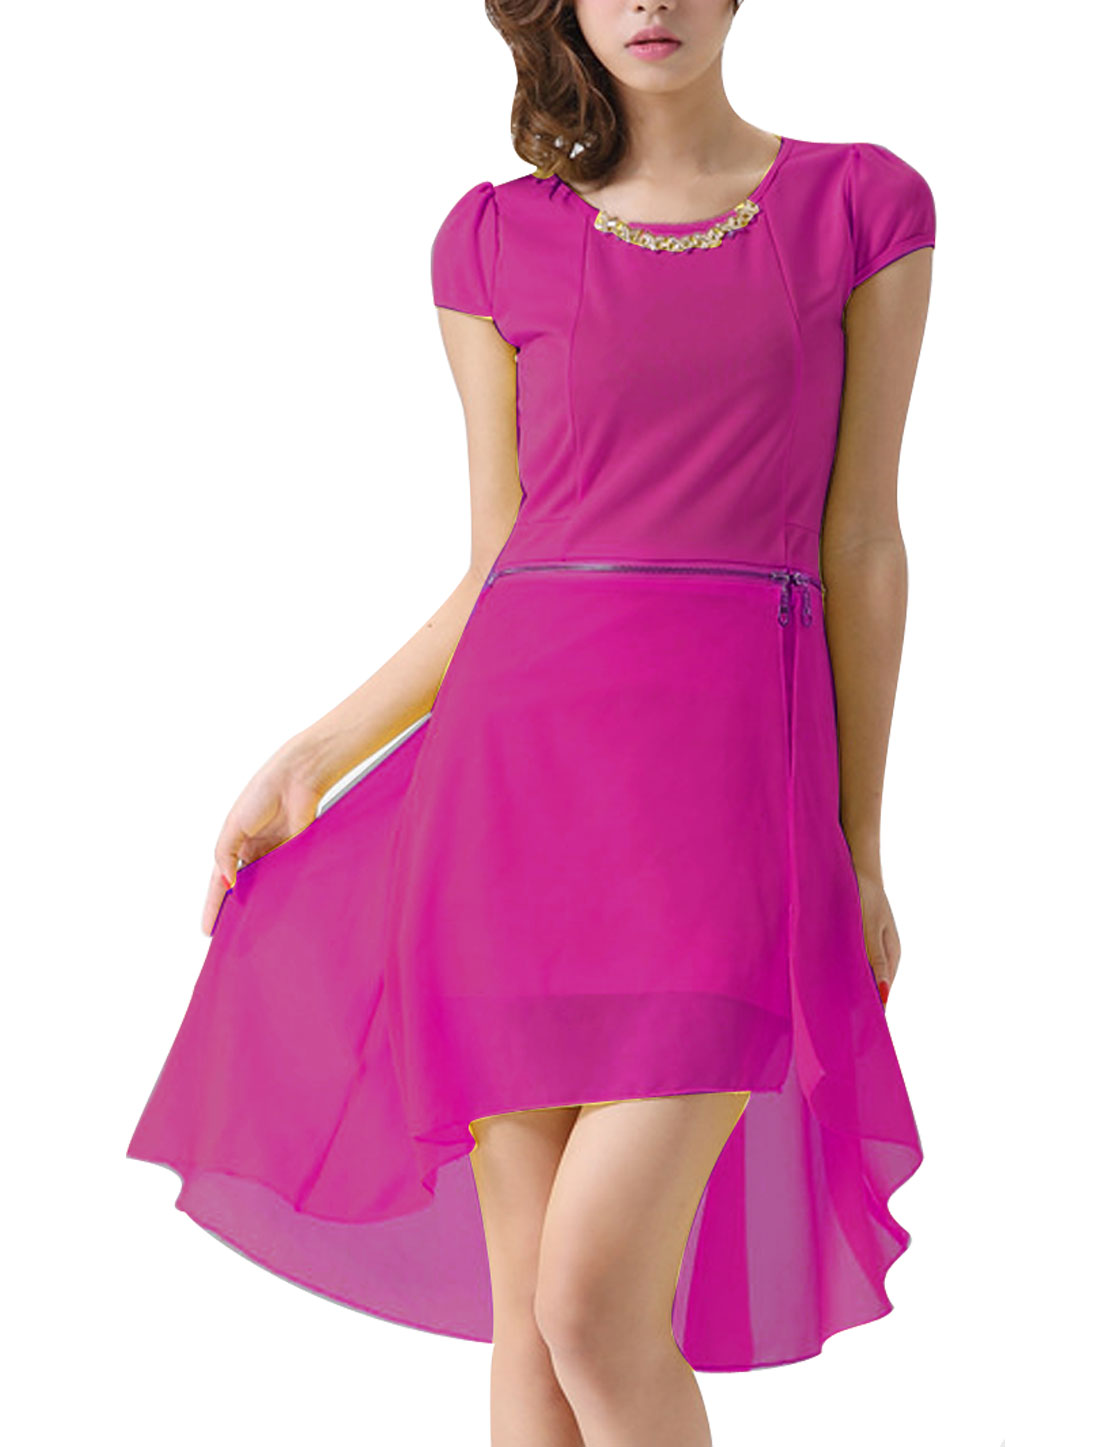 Woman Round Neck Cap Sleeve Irregular Hem Fuchsia Convertible Mini Dress S